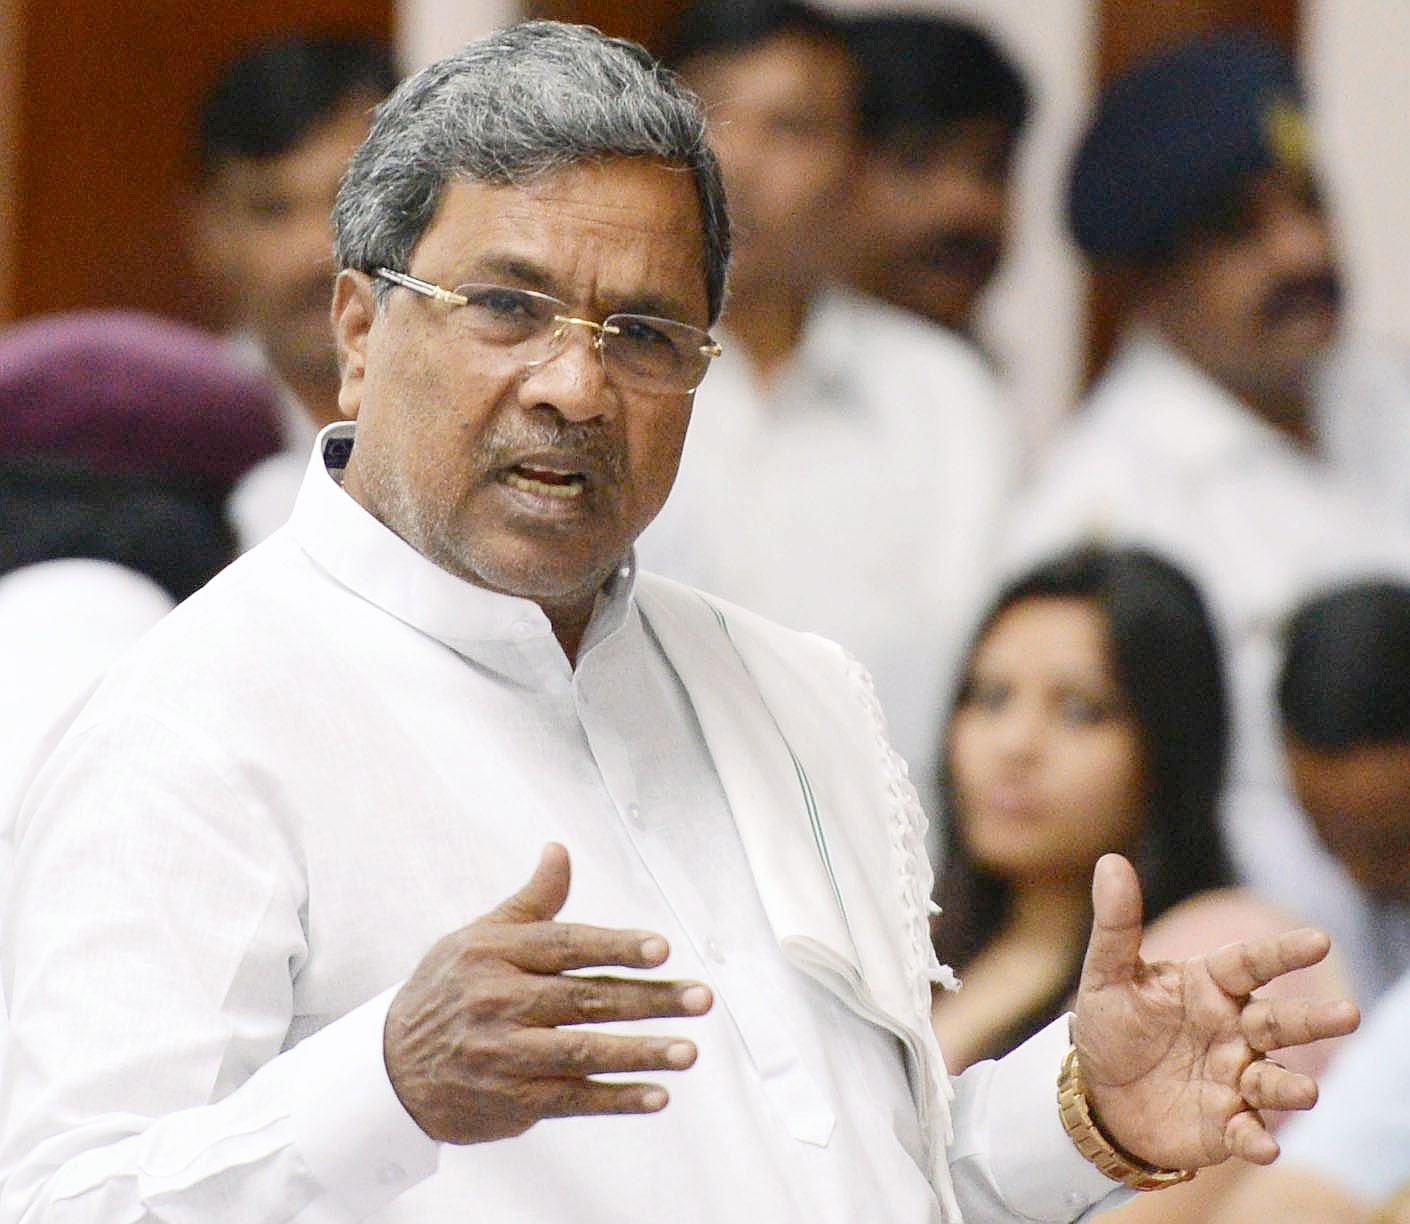 Karnataka BJP holds protest against Chief Minister Siddaramaiah over 'anti-beef comments'